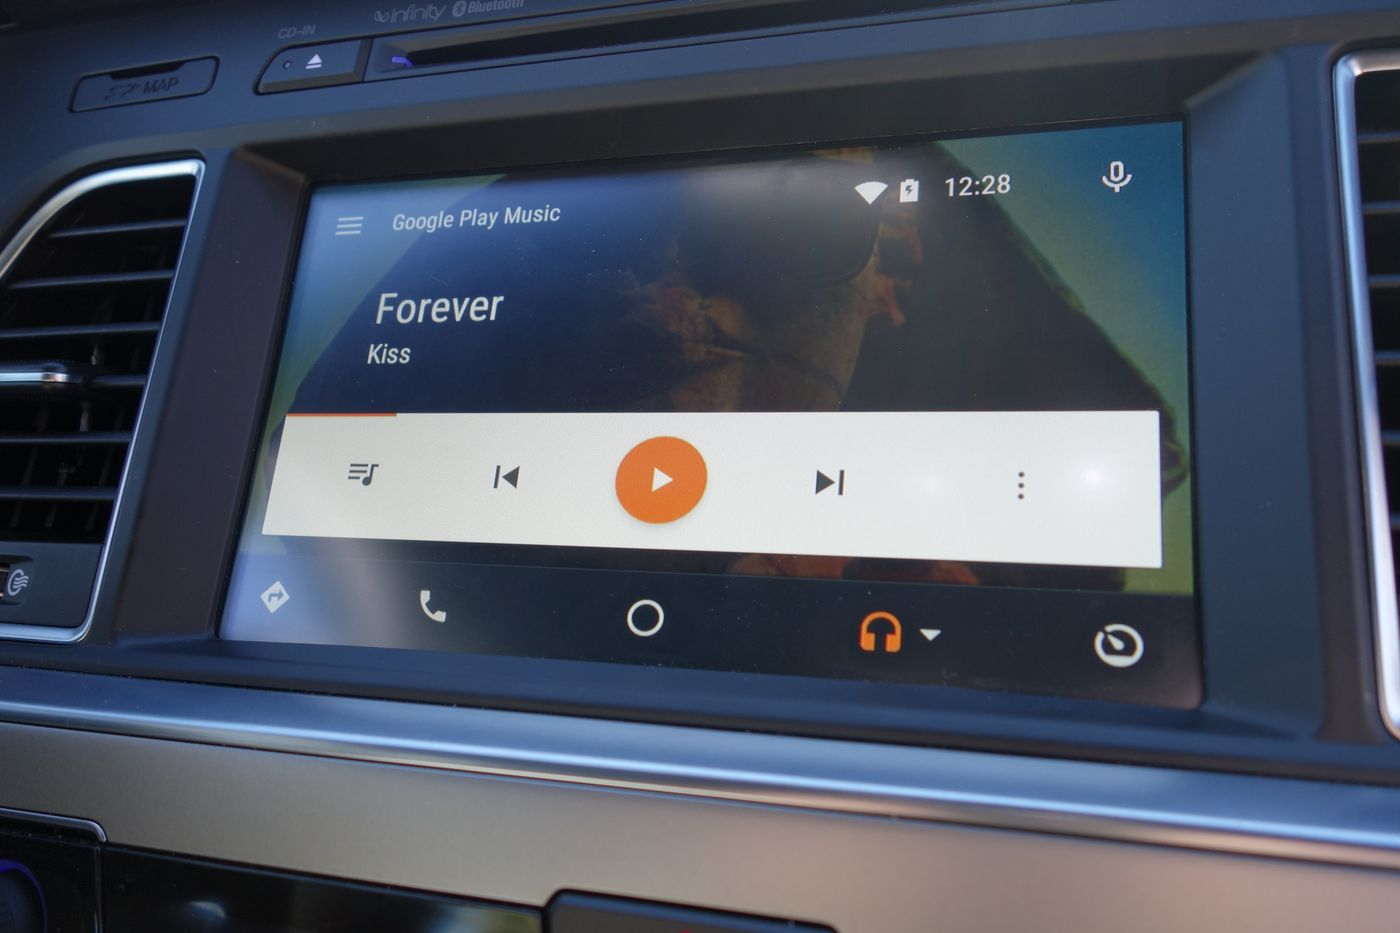 How to get married with Android Auto - The Verge